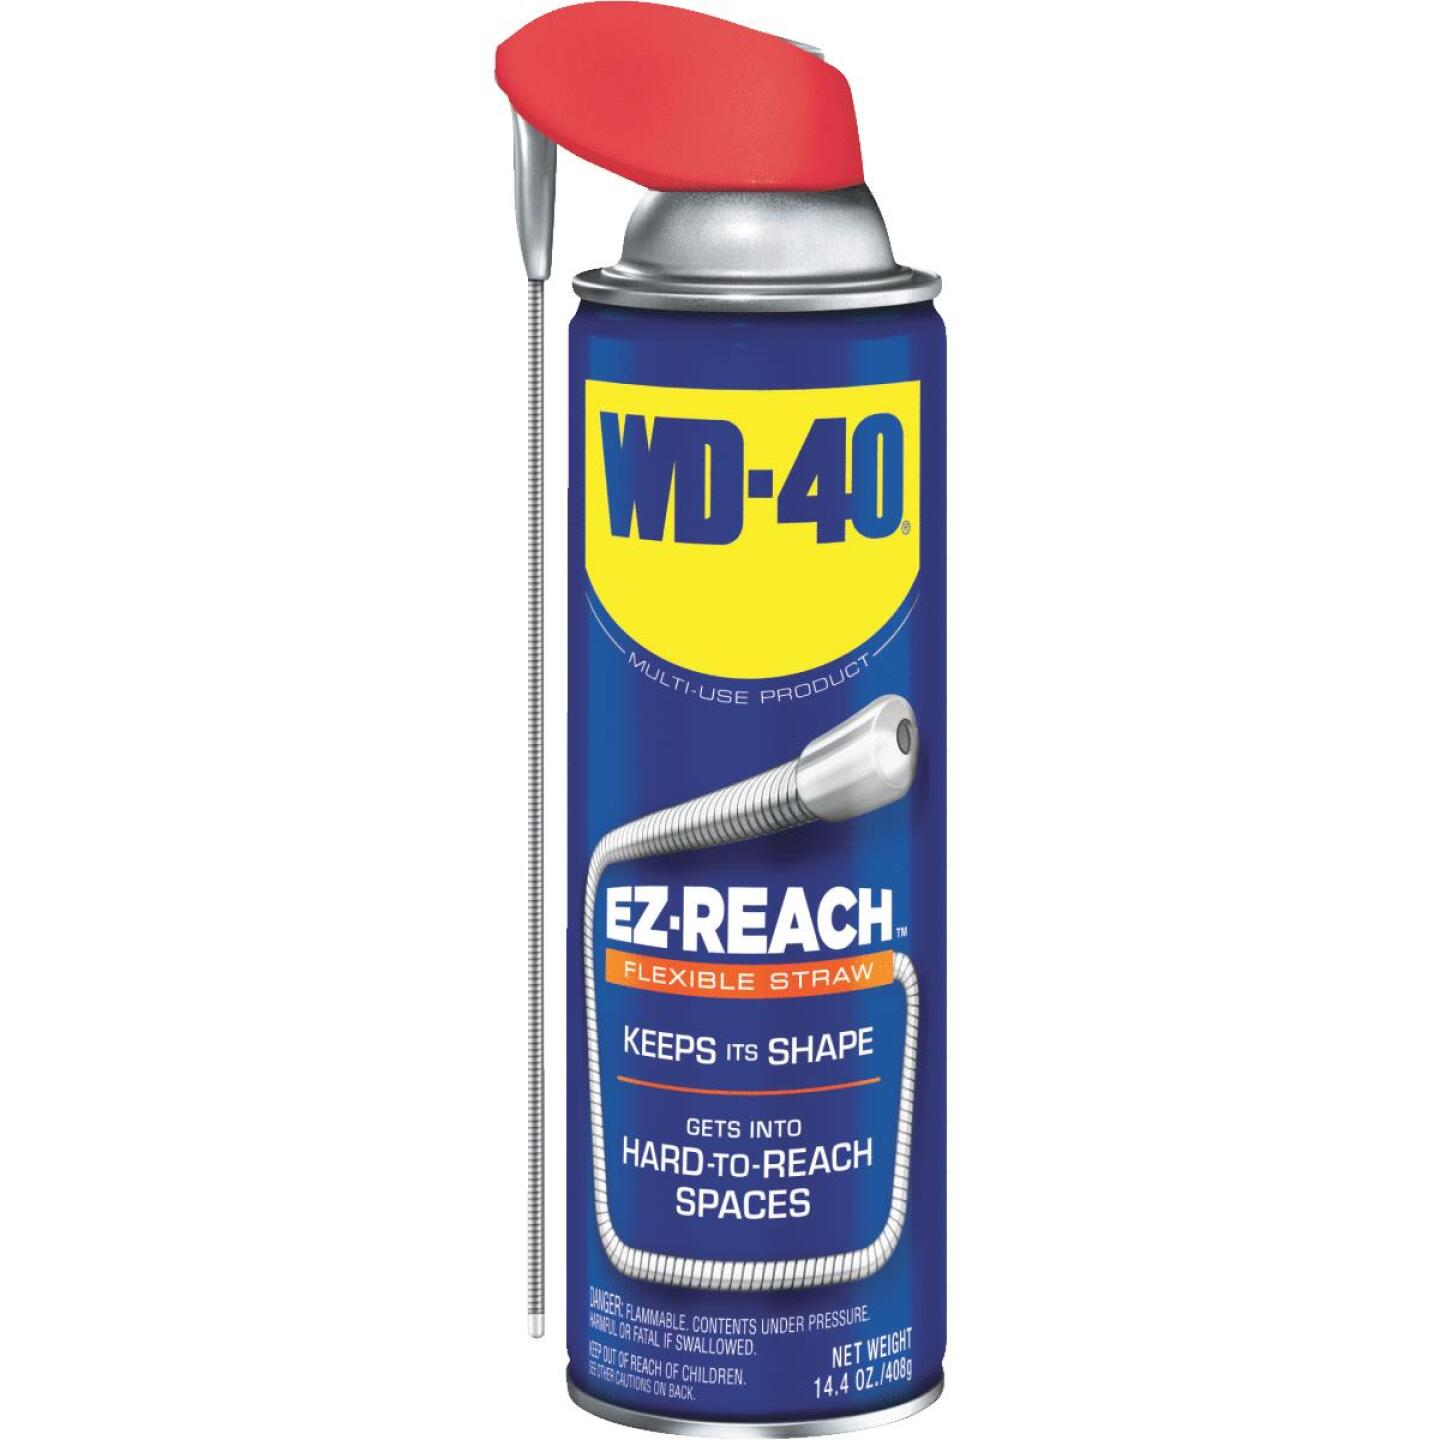 WD-40 14.4 Oz. Aerosol Multi-Purpose Lubricant with EZ Reach 8 In. Metal Straw Image 1